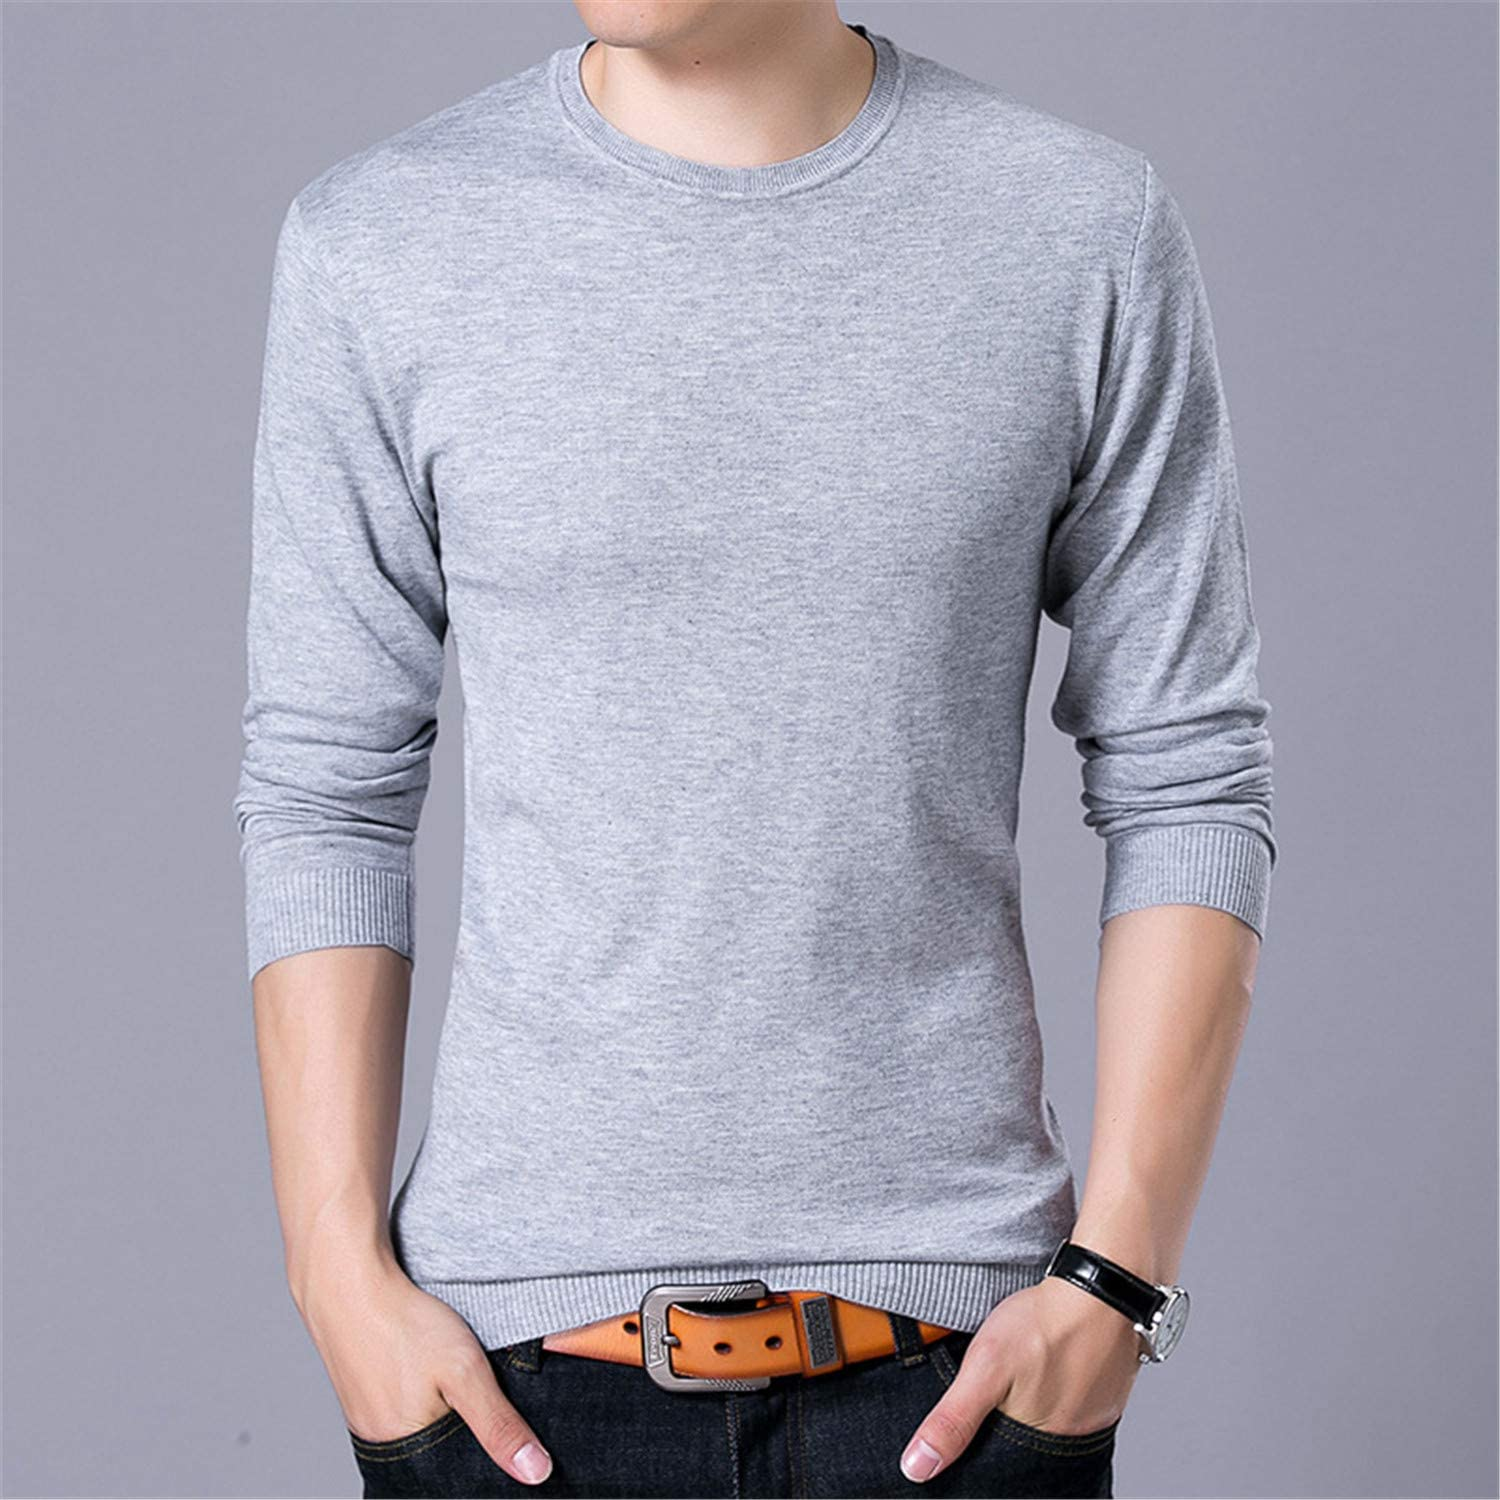 Sweater Men Winter Casual Wigeo Men Sweater Fashion O Neck Full Sleeved Sweater Slim Fit Pullovers Knitted Sweater Male Cardigan Blue